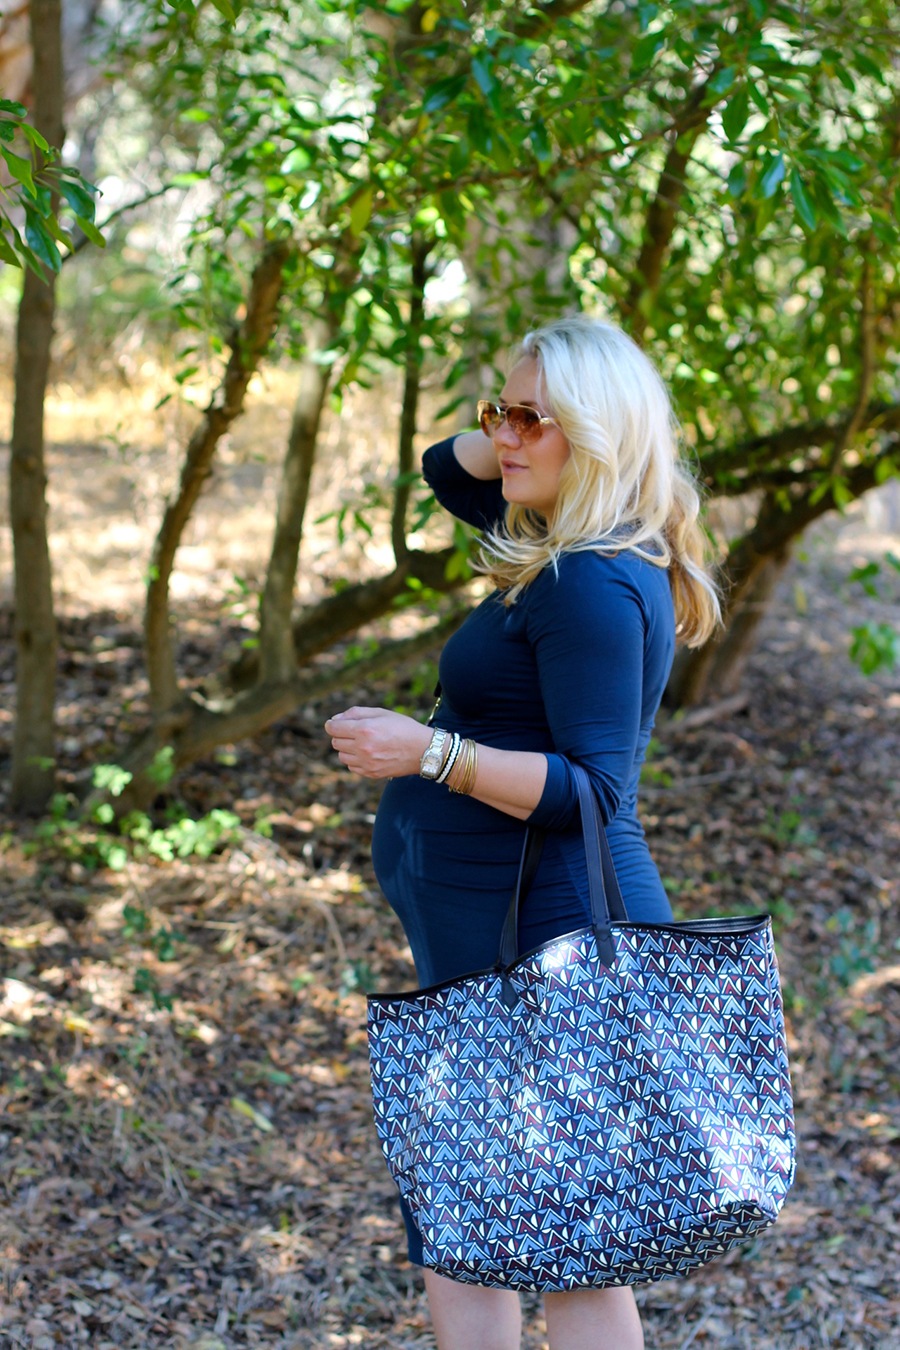 Shirred Dress-Maternity Style-Fashion Blogger-Stella & Dot-Fall Style-Pregnancy Style 7